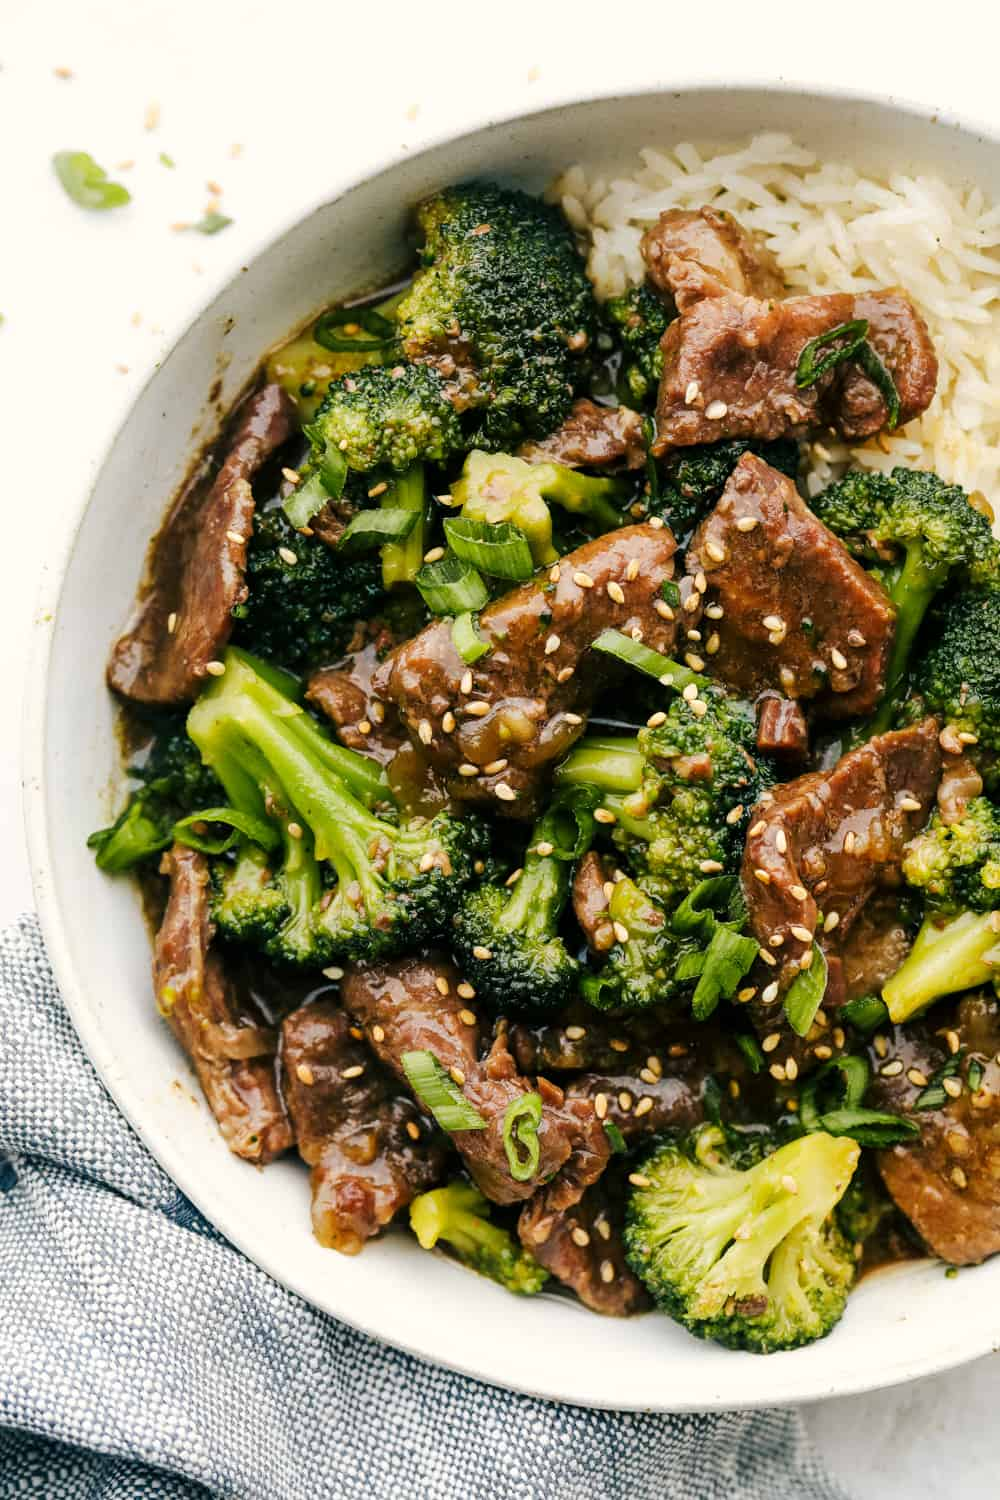 Slow Cooker Beef and Broccoli with rice in a bowl.